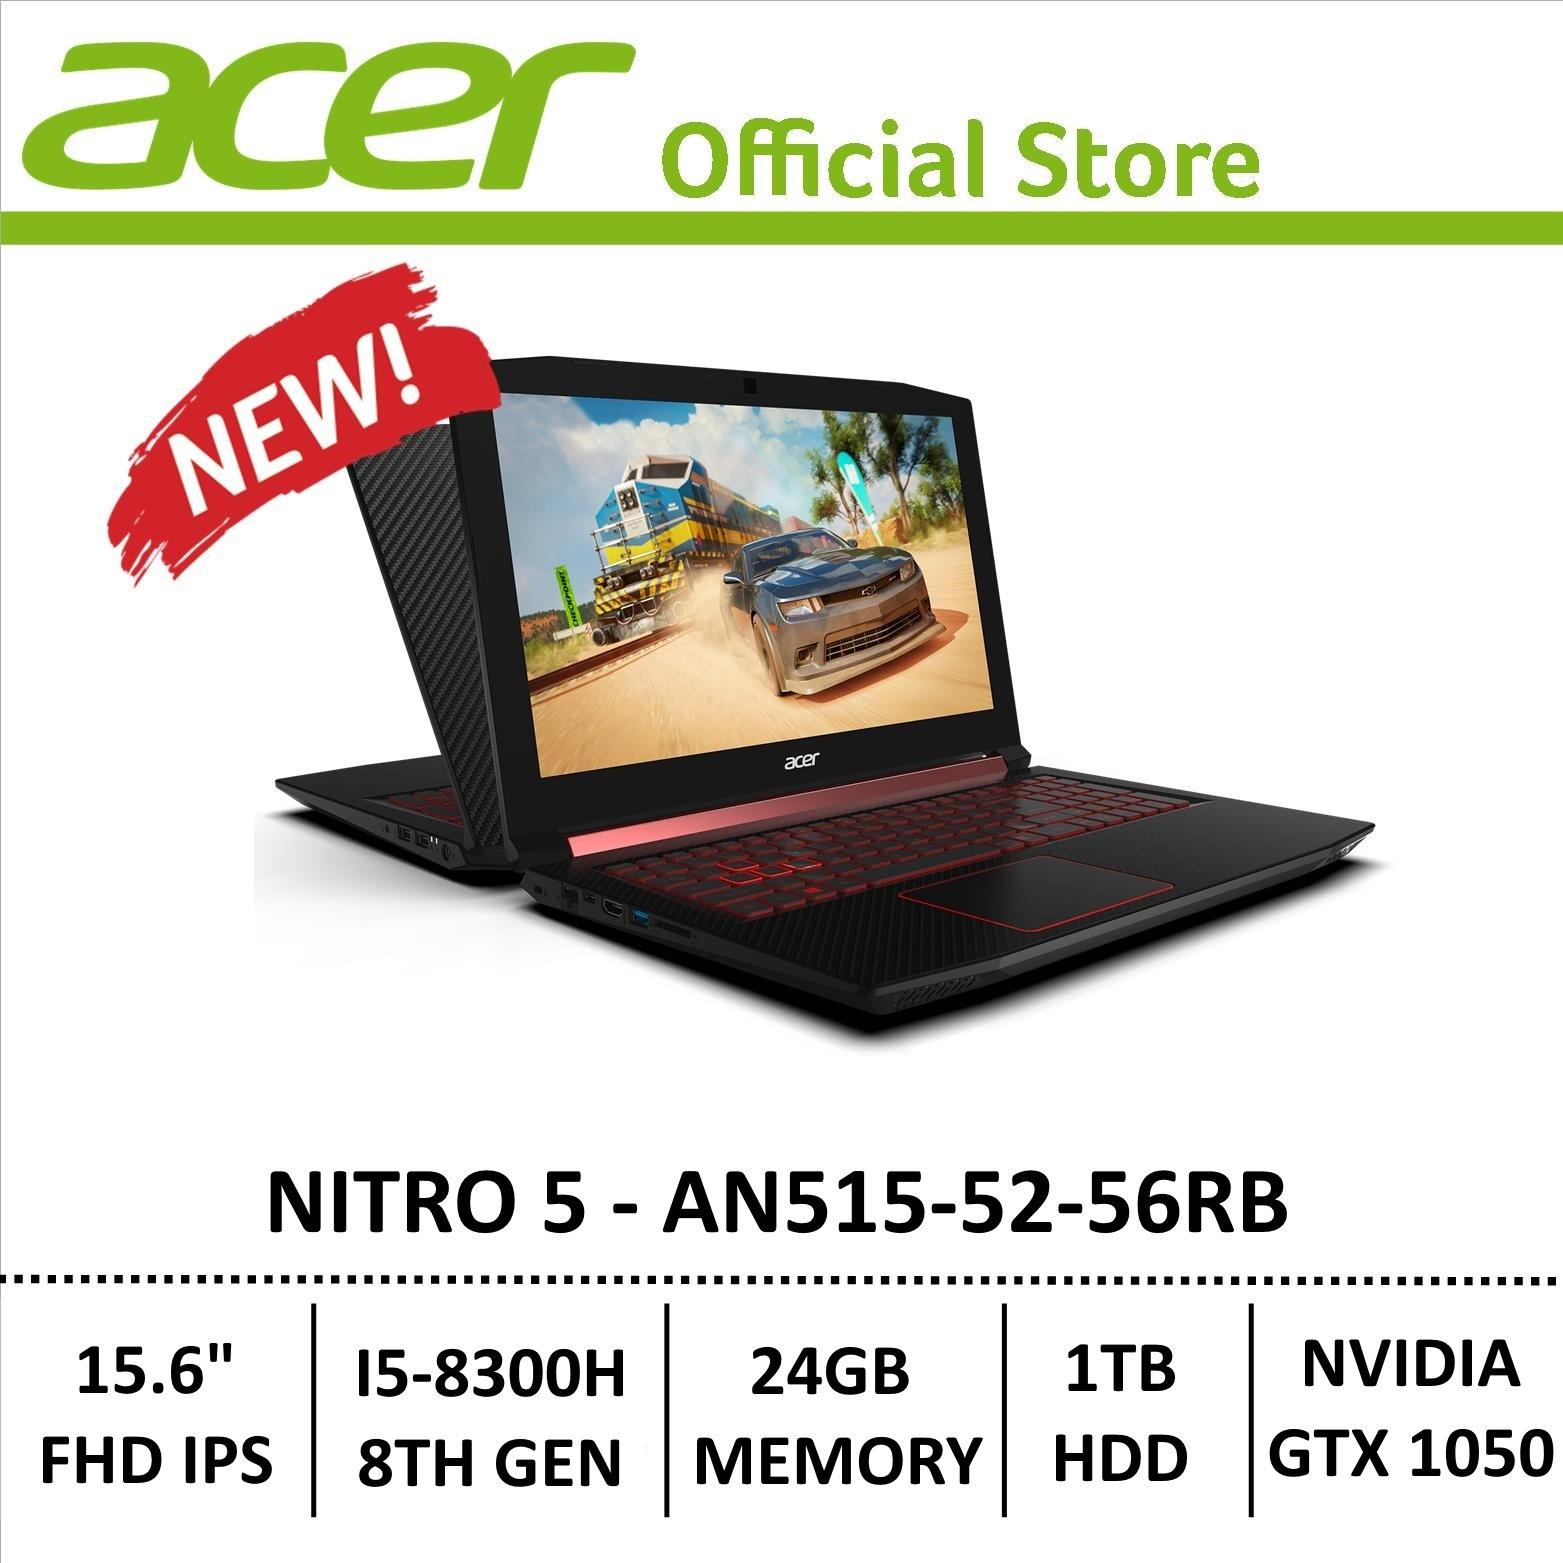 Acer Nitro 5 An515-52-56rb Gaming Laptop - 8th Generation Core I5+ Processor With Gtx 1050 Graphics (optane Memory) By Acer Official Store.